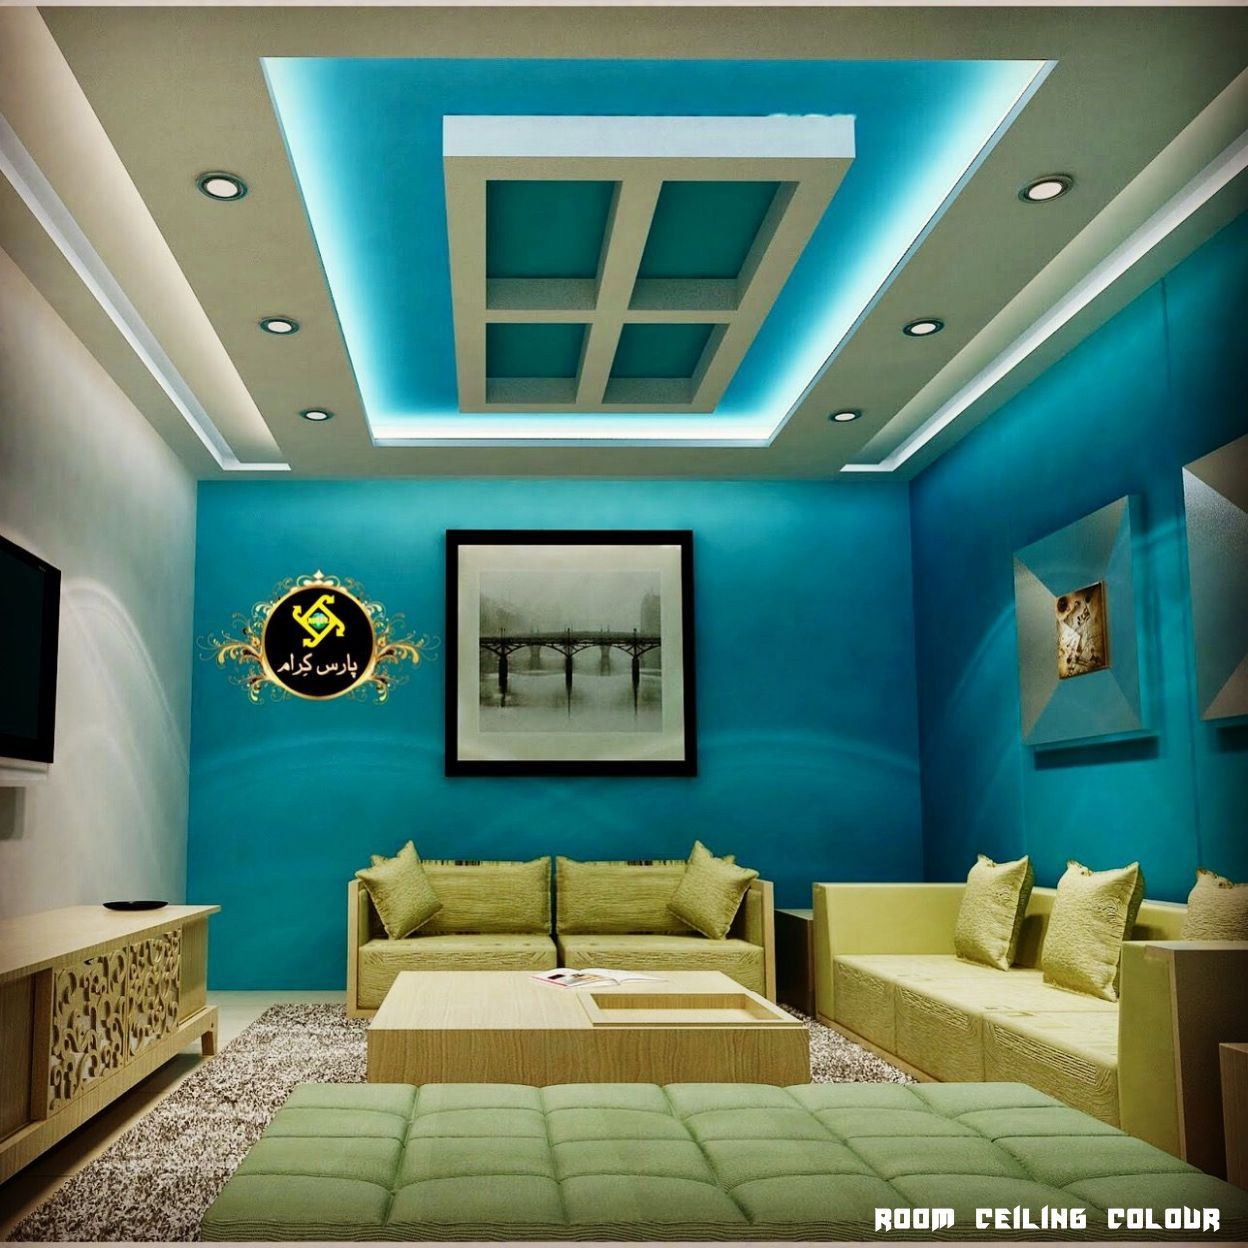 11 Room Ceiling Colour In 2020 Ceiling Design Bedroom Colored Ceiling Ceiling Color Design